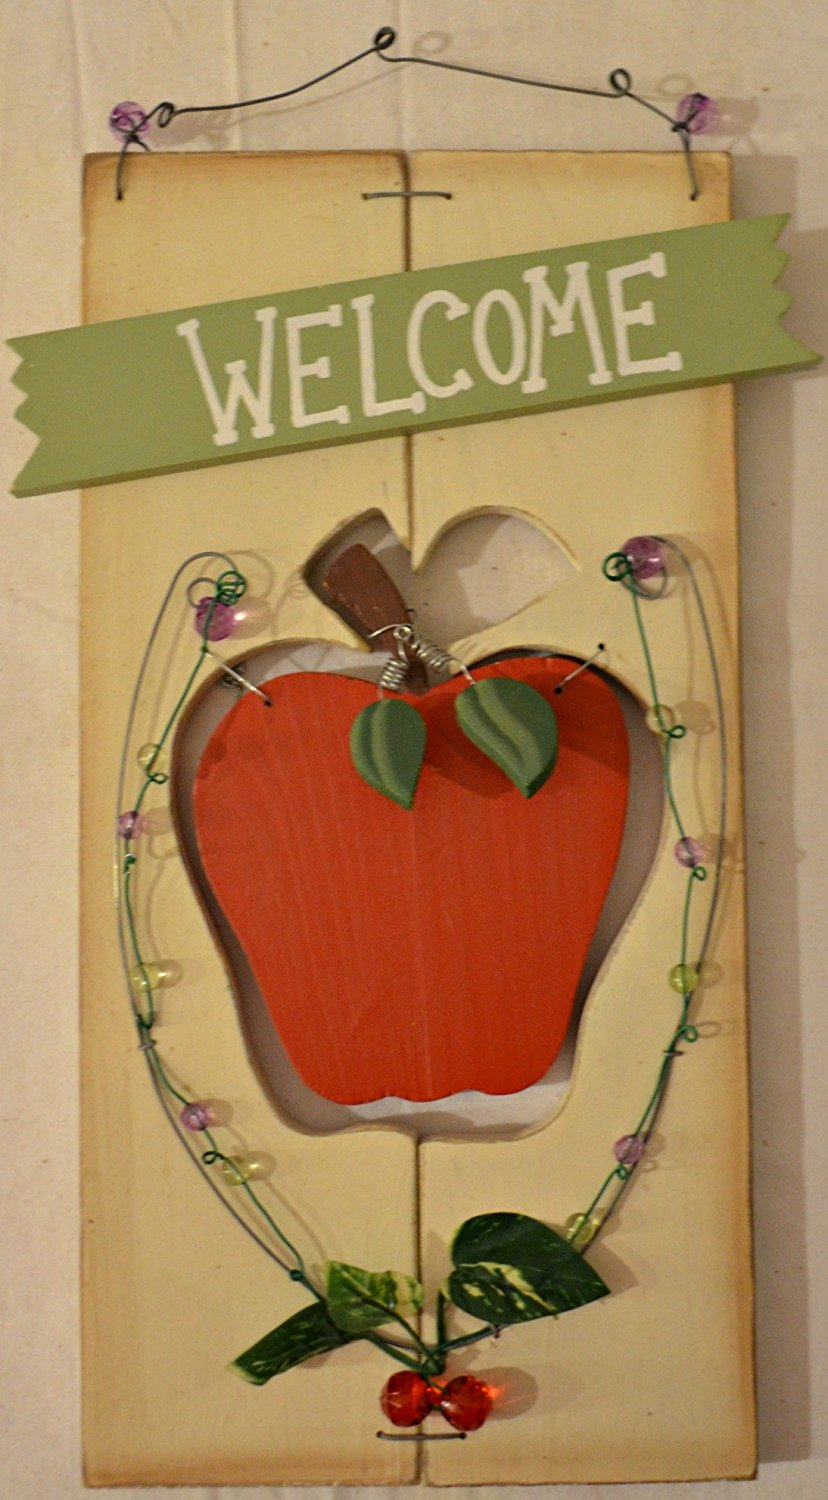 """Rustic Country Wood Plaque Sign Decoration Apple Themed with a Metal Wire for Hanging 9 x 14 1/2 x 1/4 Inches. Wooden Sign Saying """"Welcome"""" with Decoration Metal Wires with Beads, Apple Leaves, Apple Shaped Cutout with Red Wood Apple Hanging in Center"""